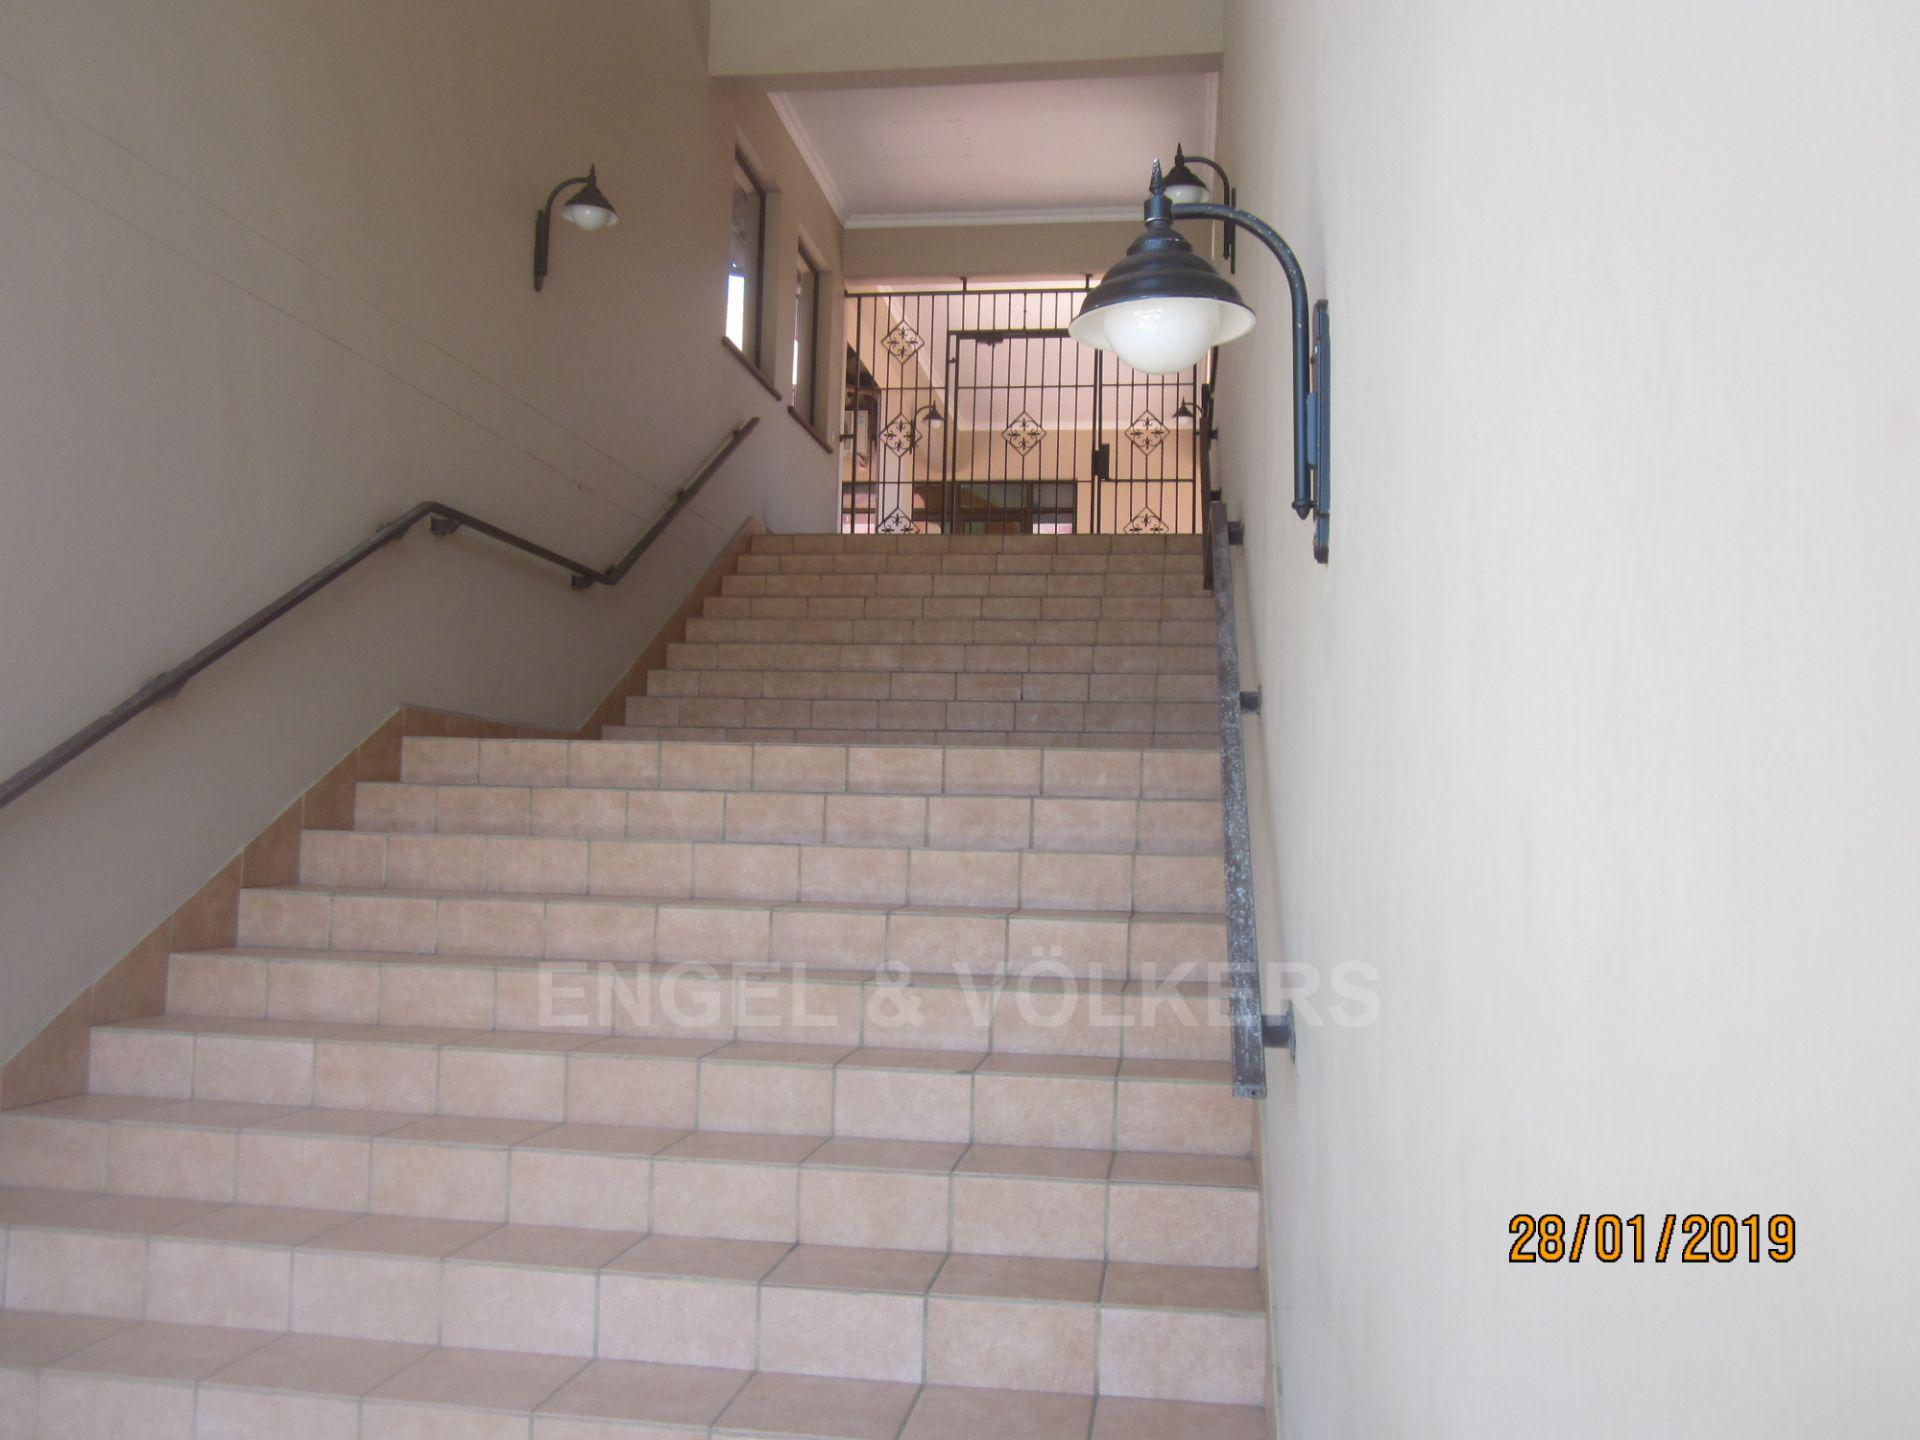 Investment / Residential investment in Shelly Beach - 007 Stairs to Offices.JPG